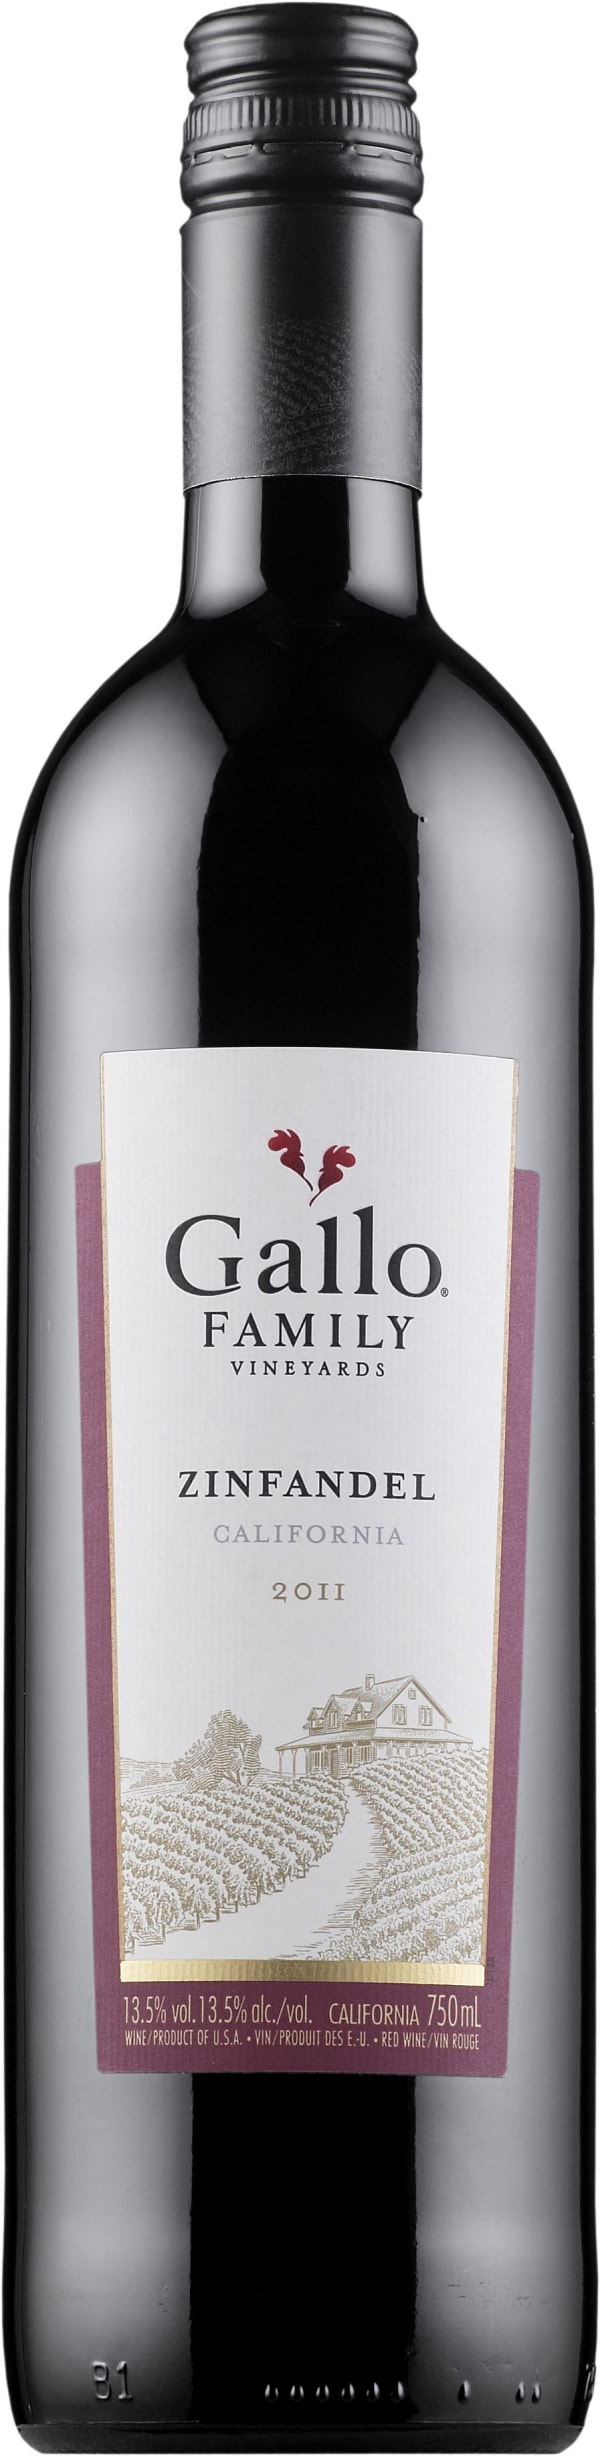 Gallo Family Vineyards Zinfandel 2014